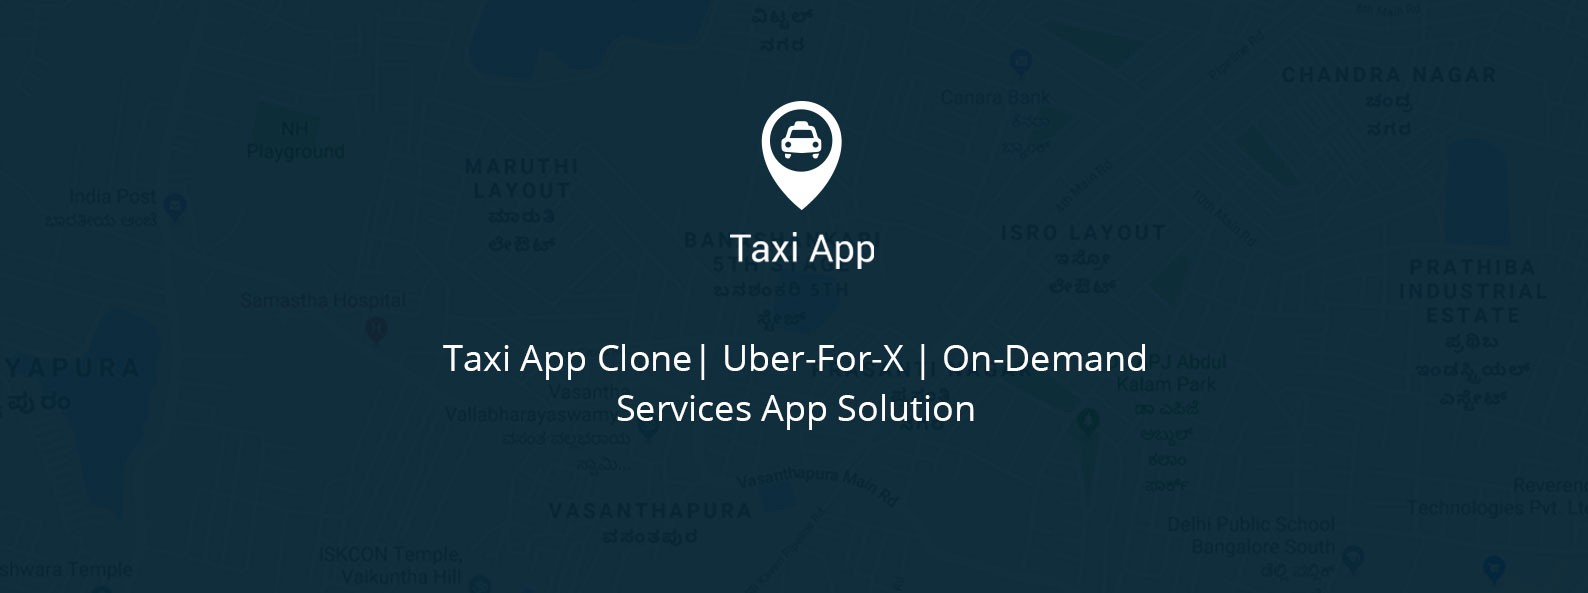 Taxi App Clone| Taxi Services| On-Demand Services App Solution